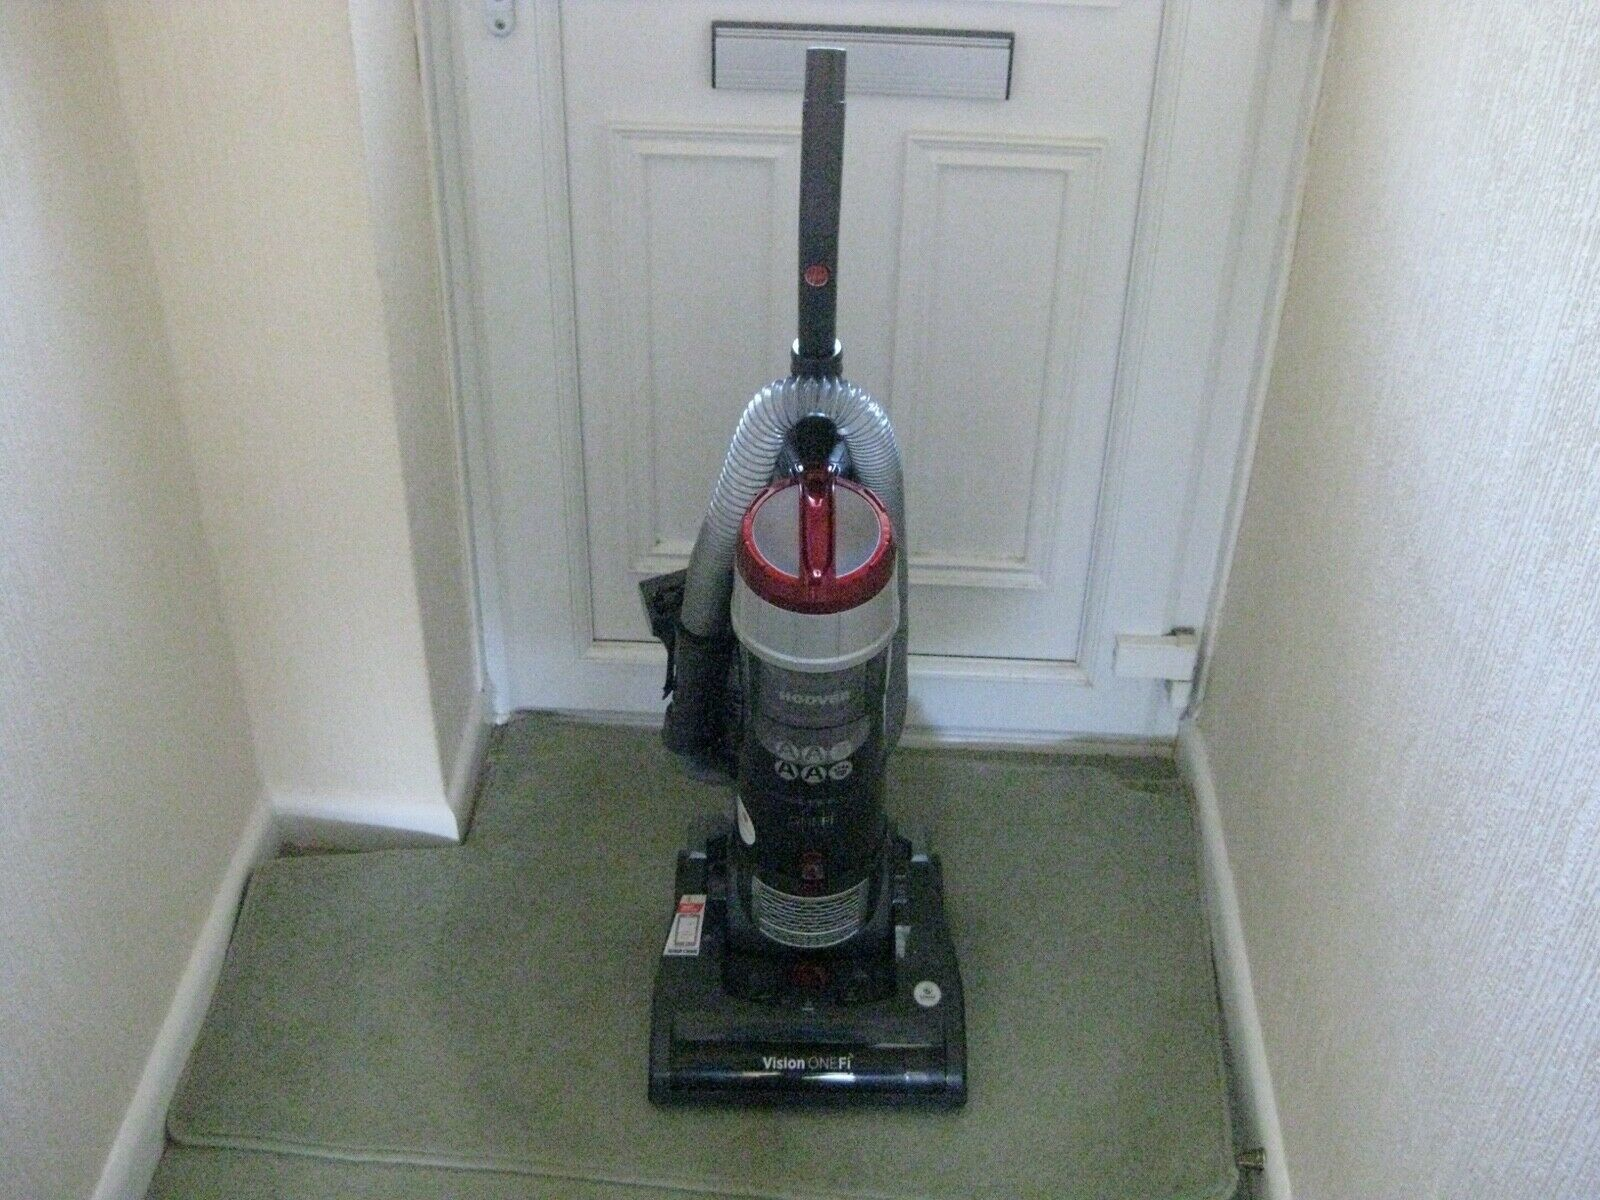 Hoover VR81OF01 850W Vision One Bagless Upright Vacuum Cleaner GreyRed